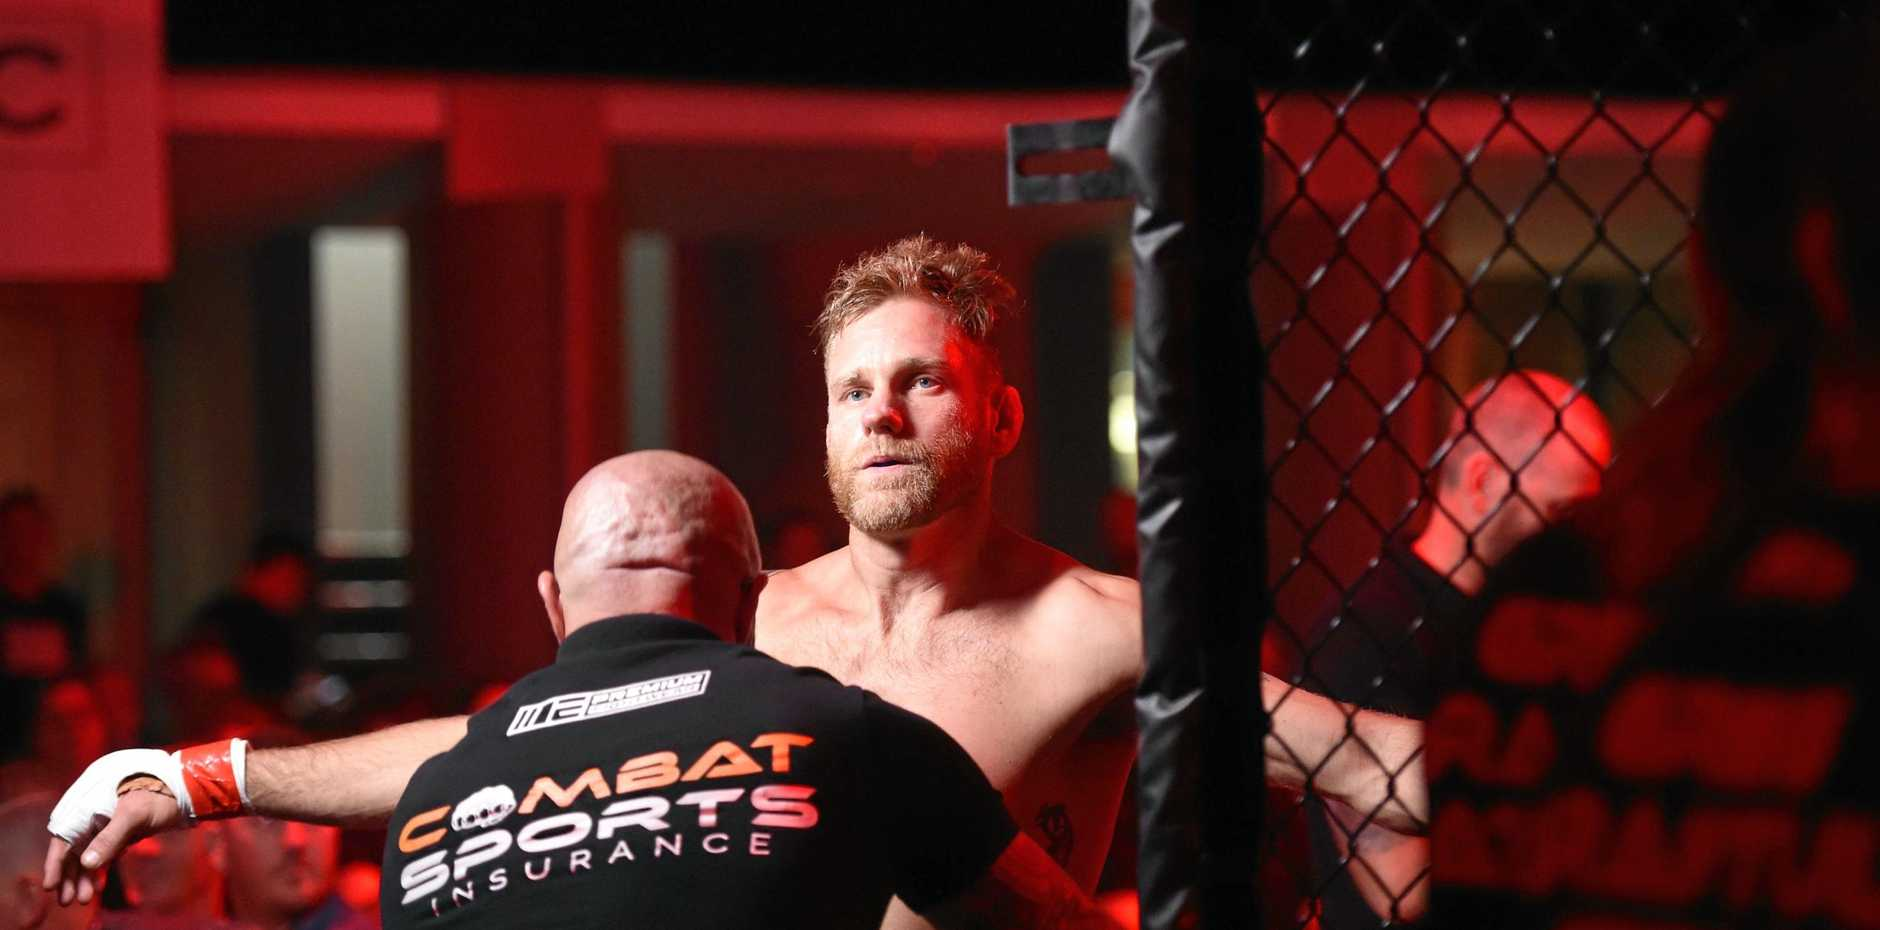 LAST DANCE: Greg Atzori enters the cage for his last bout at Eternal MMA 39 at Southport Sharks on Saturday, November 24.